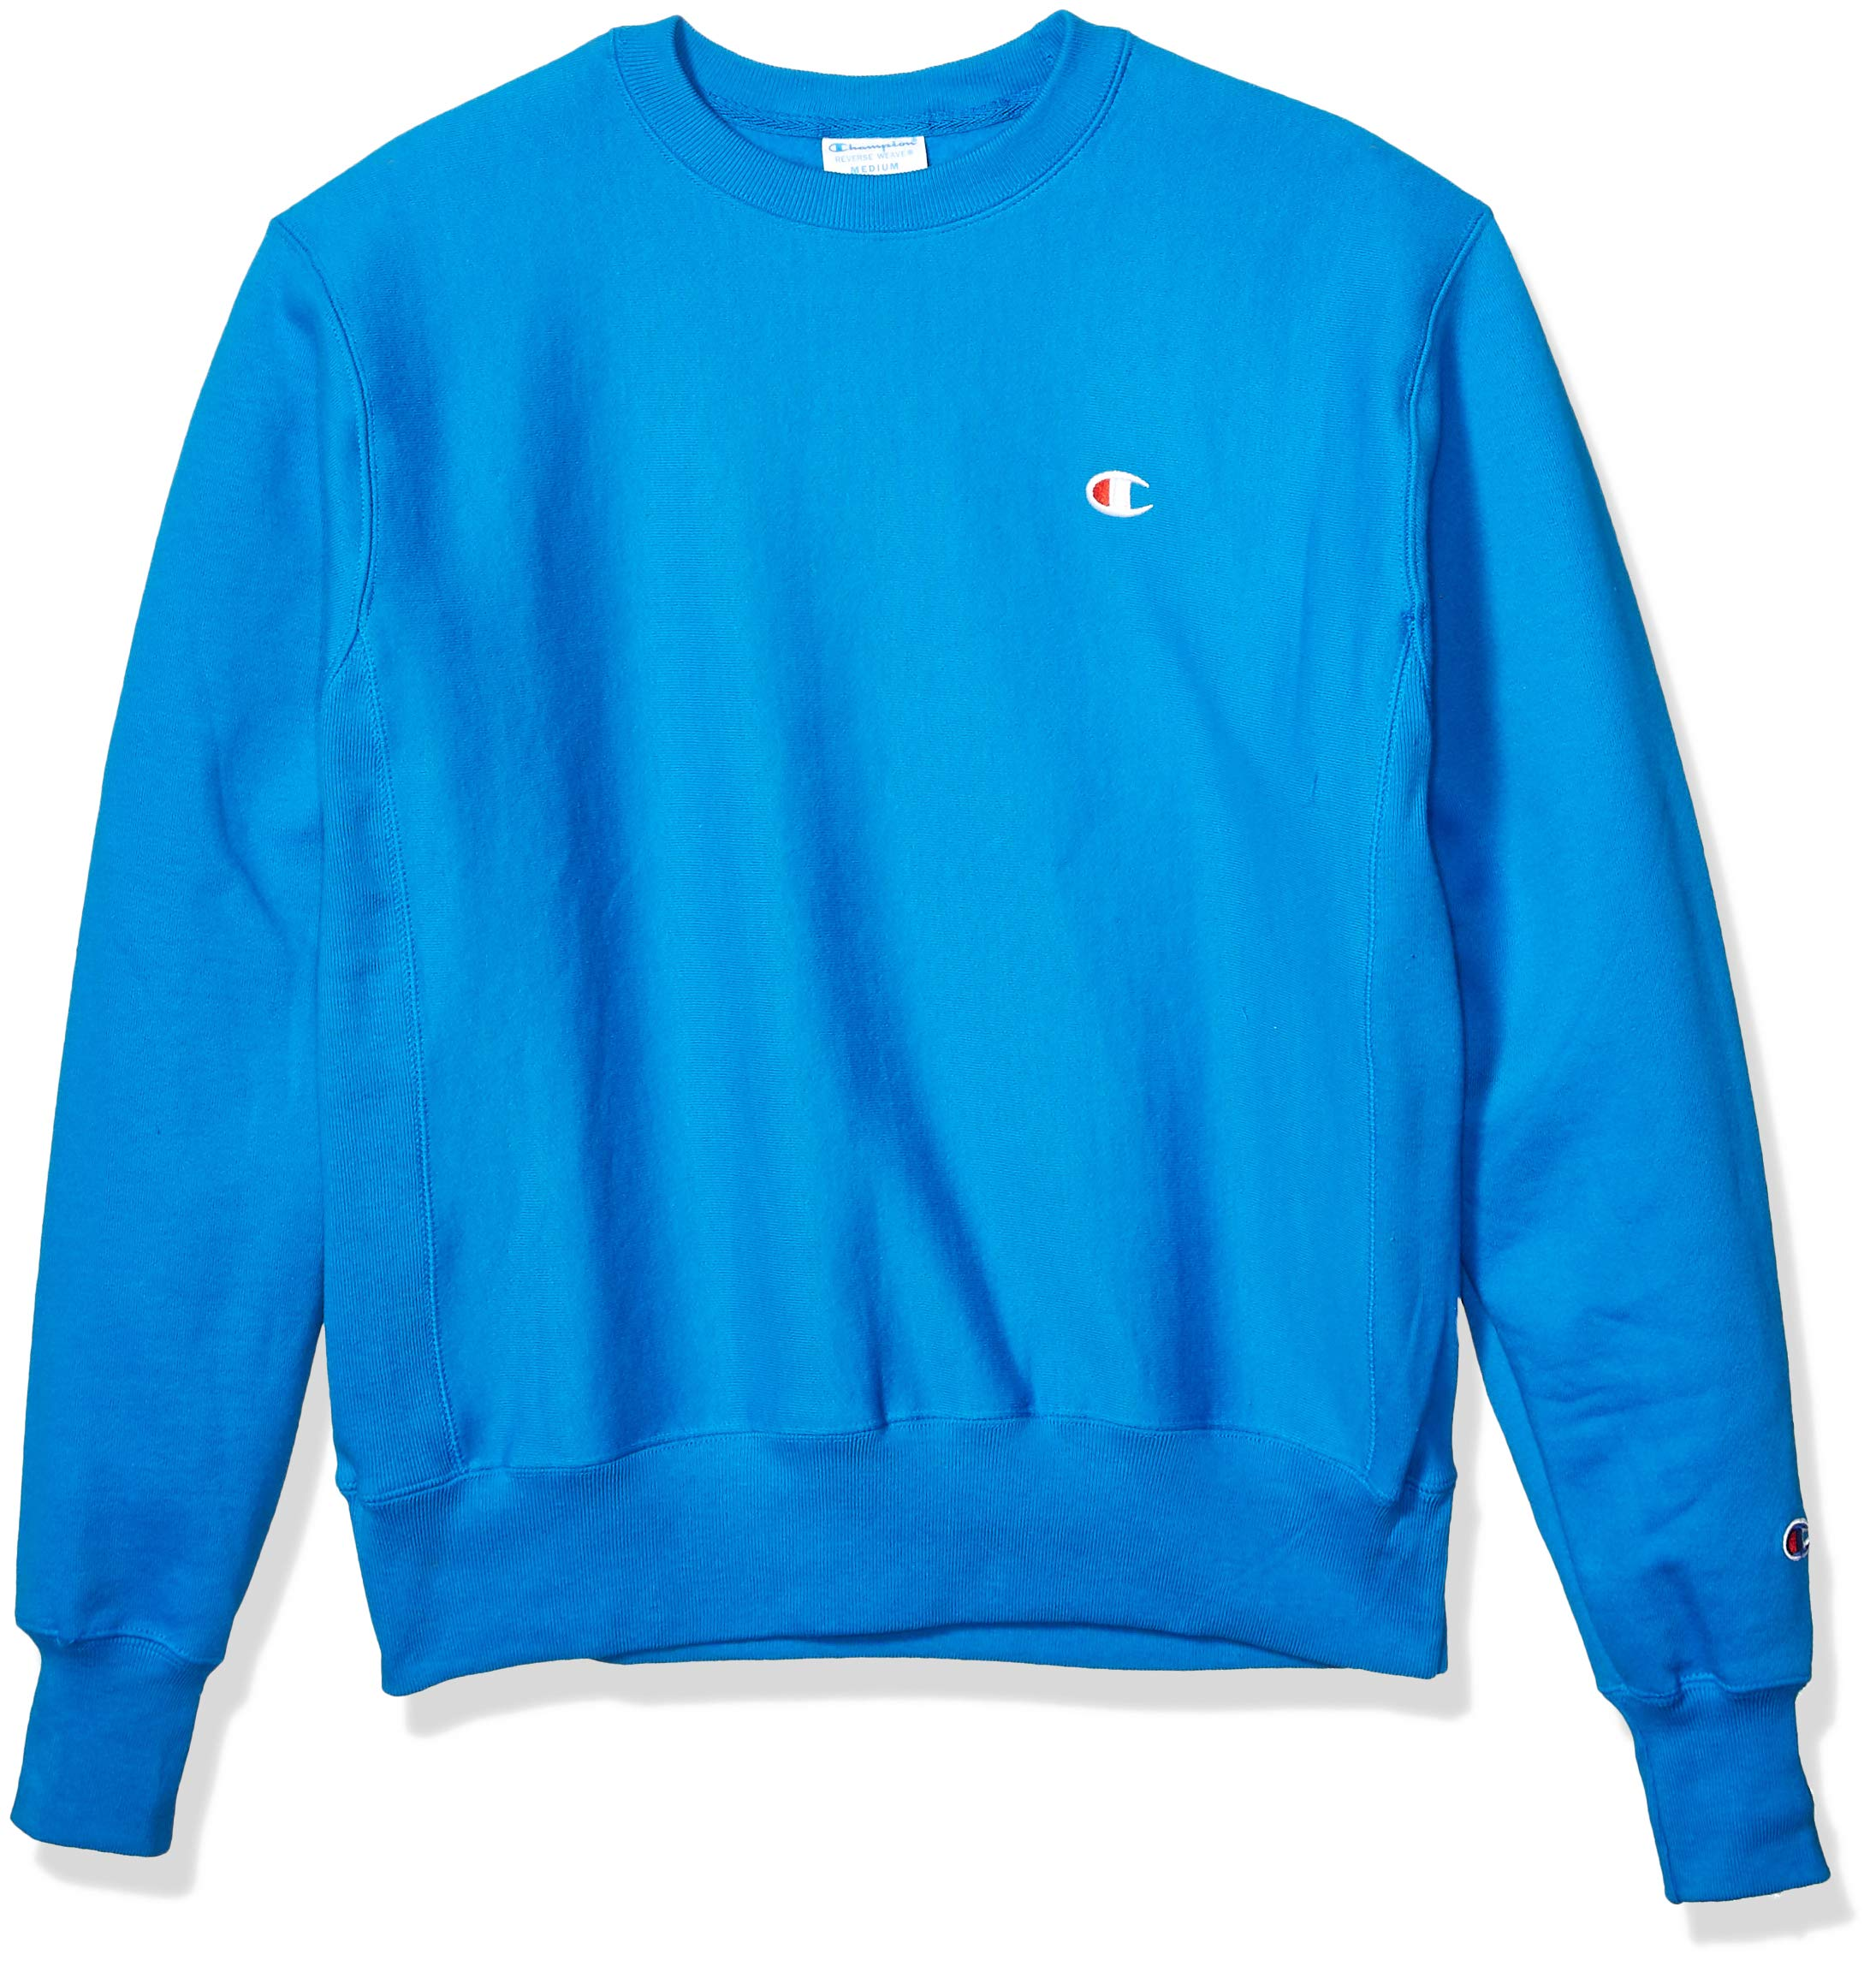 Champion LIFE Men's Reverse Weave Sweatshirt, Running Waves-Left Chest Small c, 2X Large by Champion LIFE